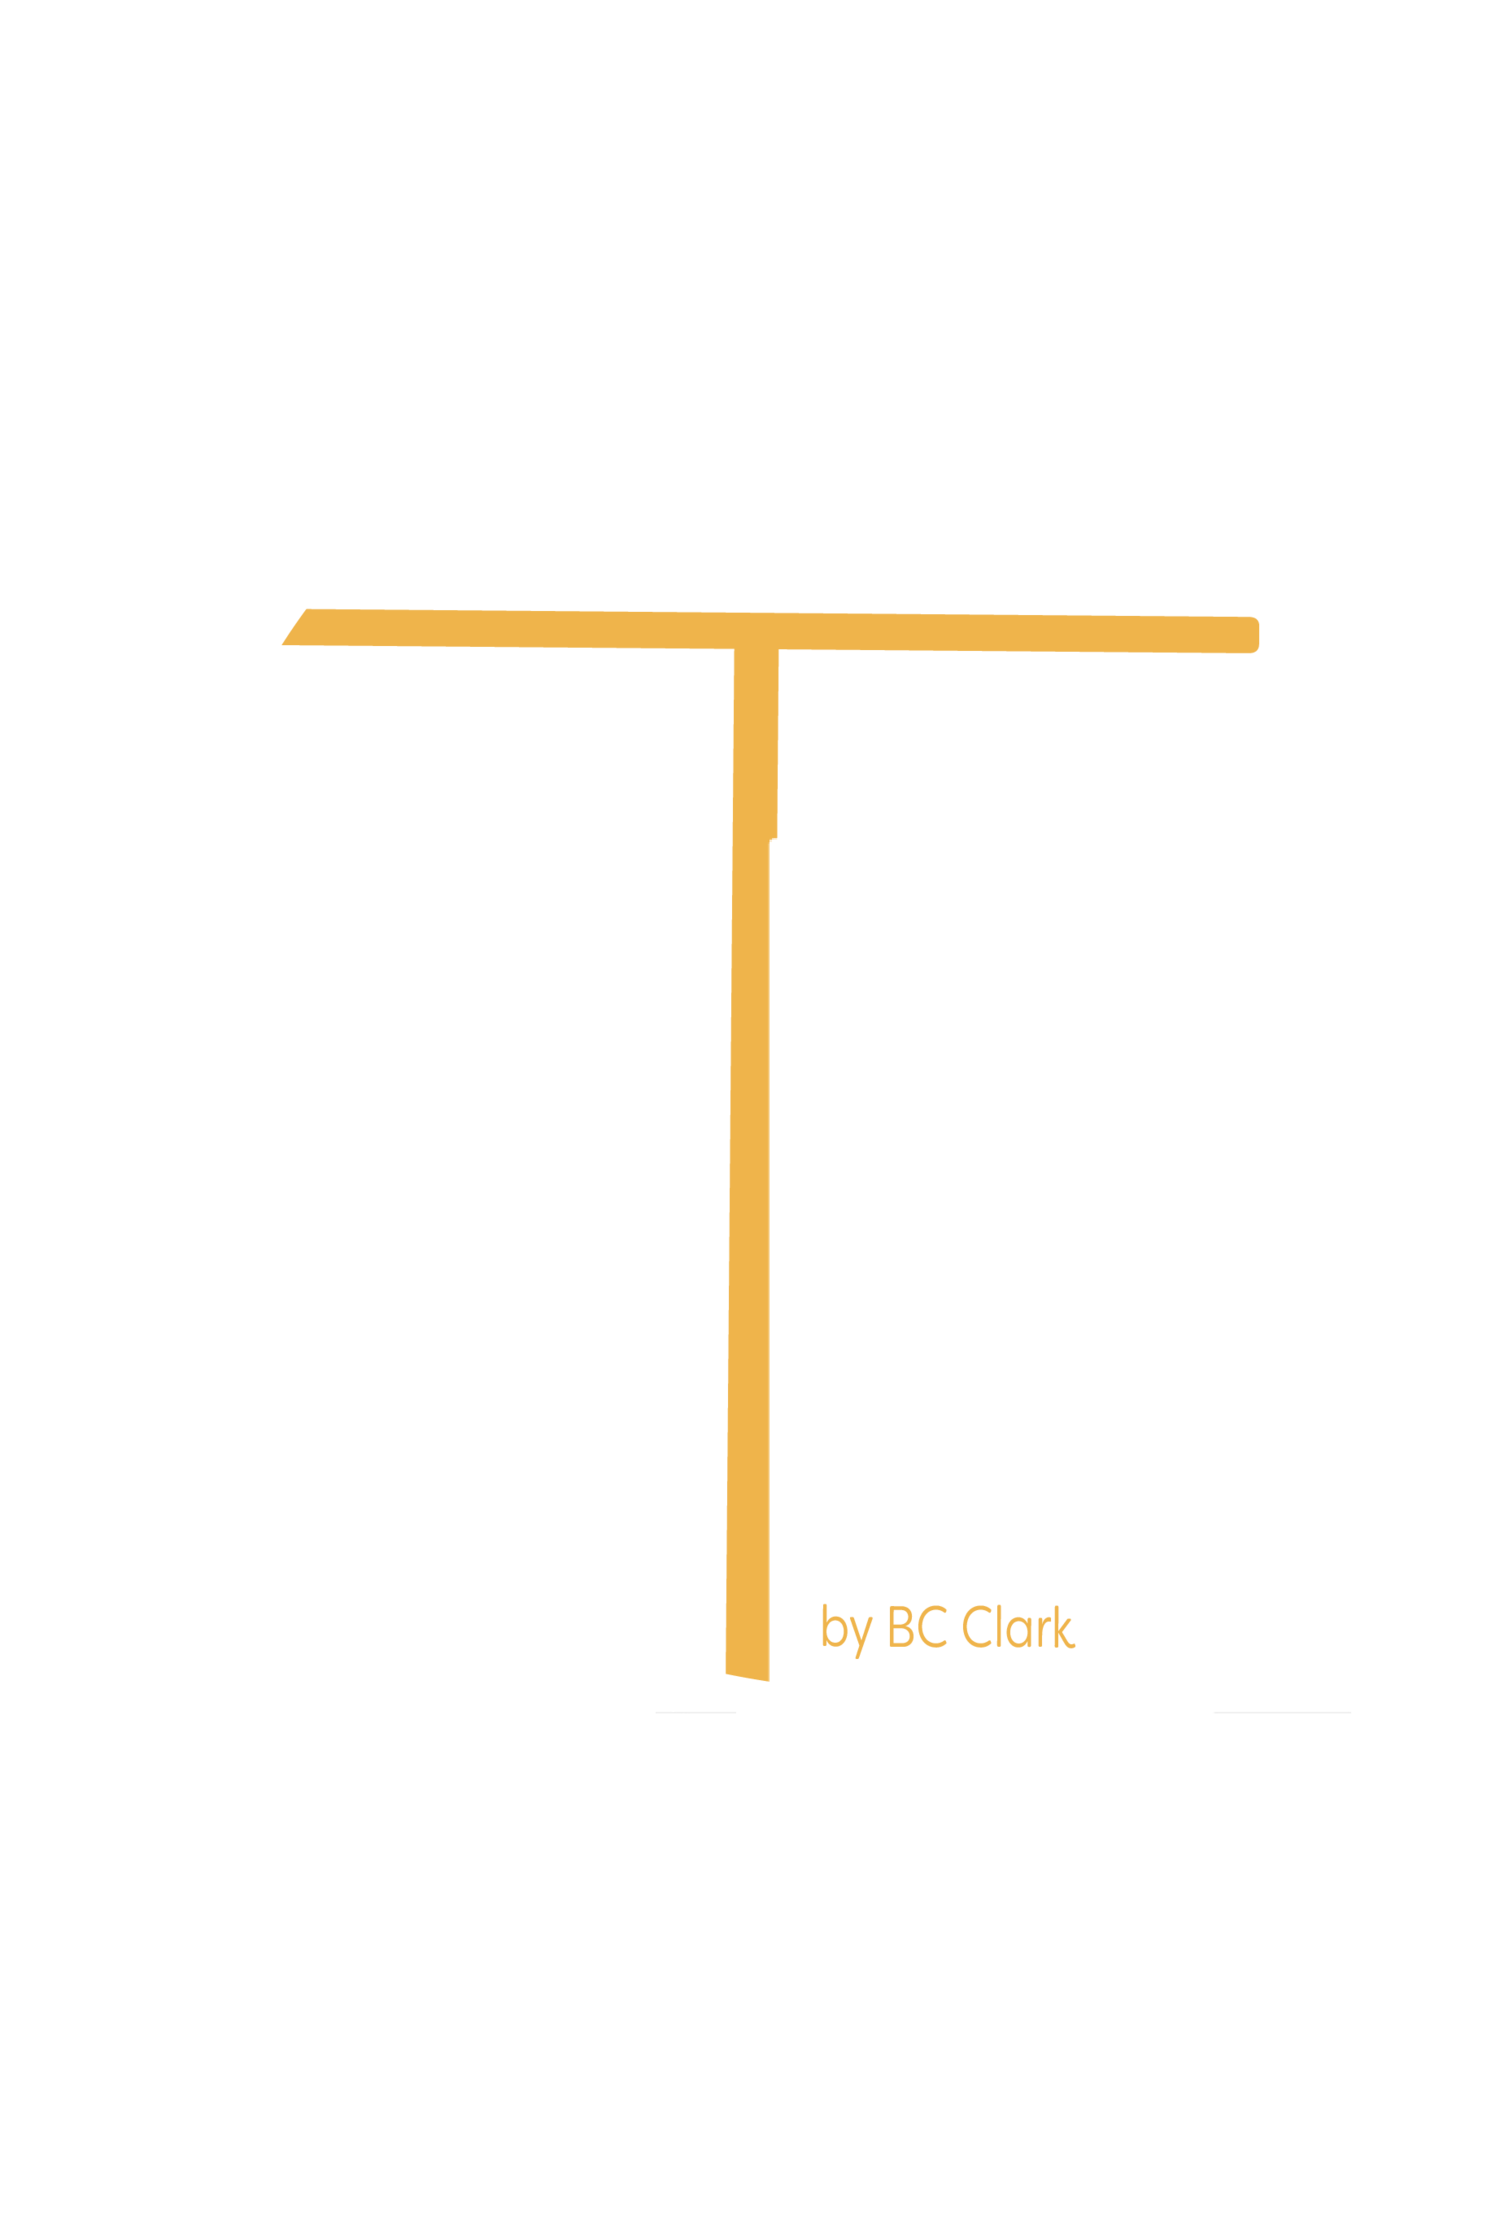 The Business ConnectionNe, LLC